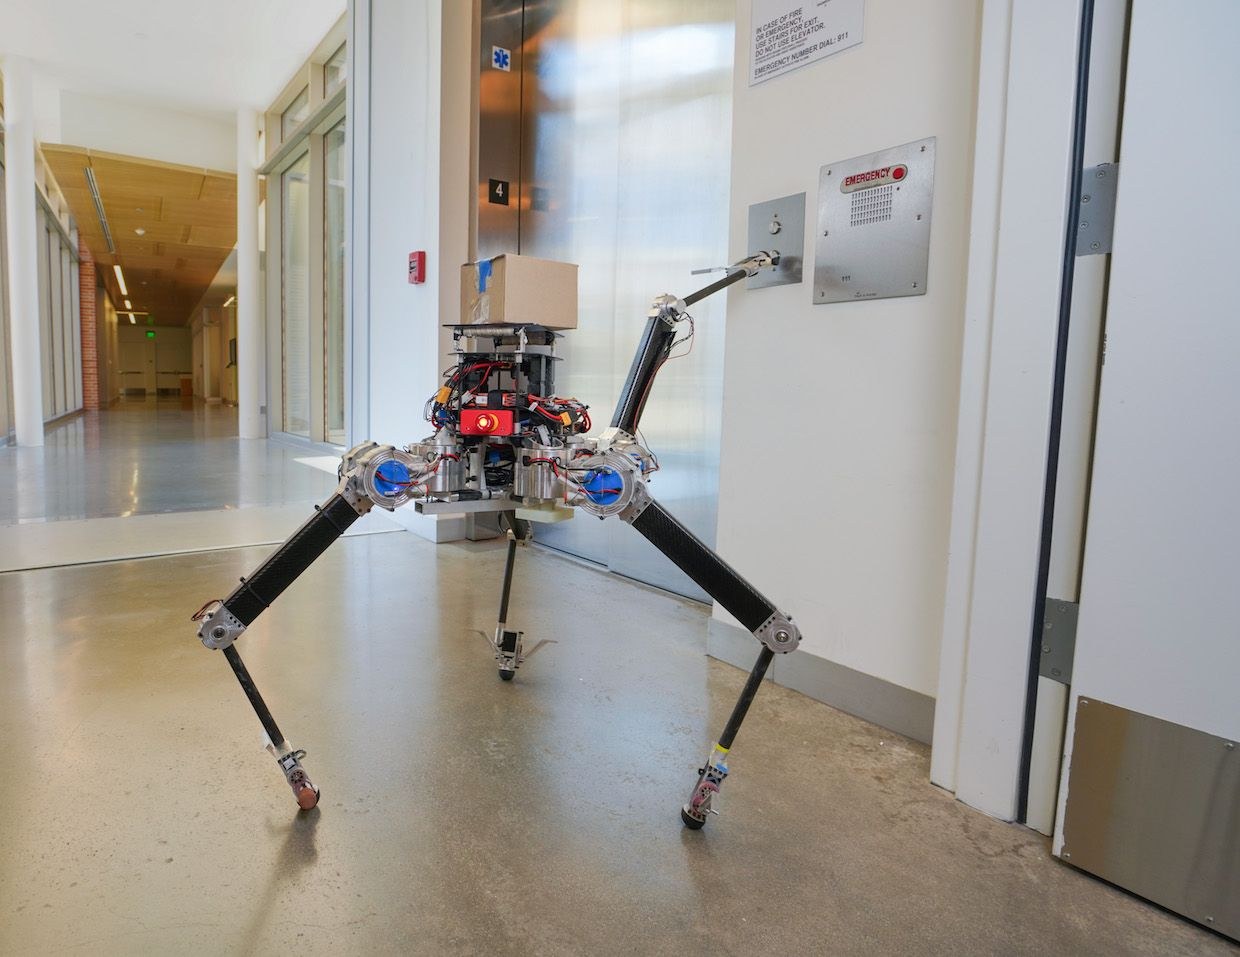 RoMeLa's Newest Robot Is a Curiously Symmetrical Dynamic Quadruped